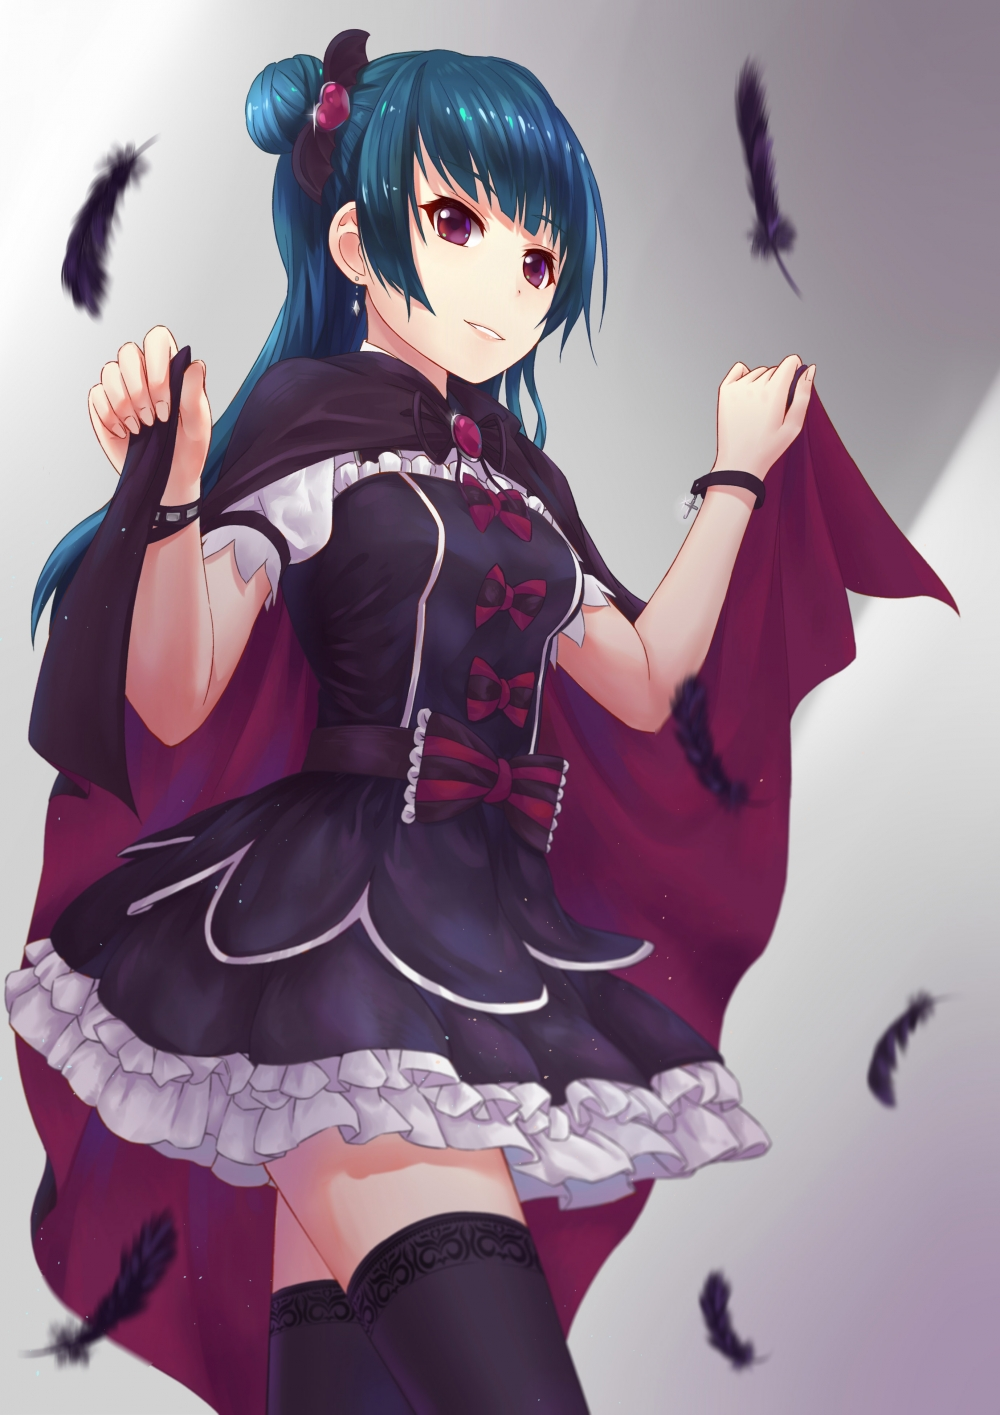 Live Wallpaper For Iphone 3gs Wallpaper Love Live Sunshine Tsushima Yoshiko Cape